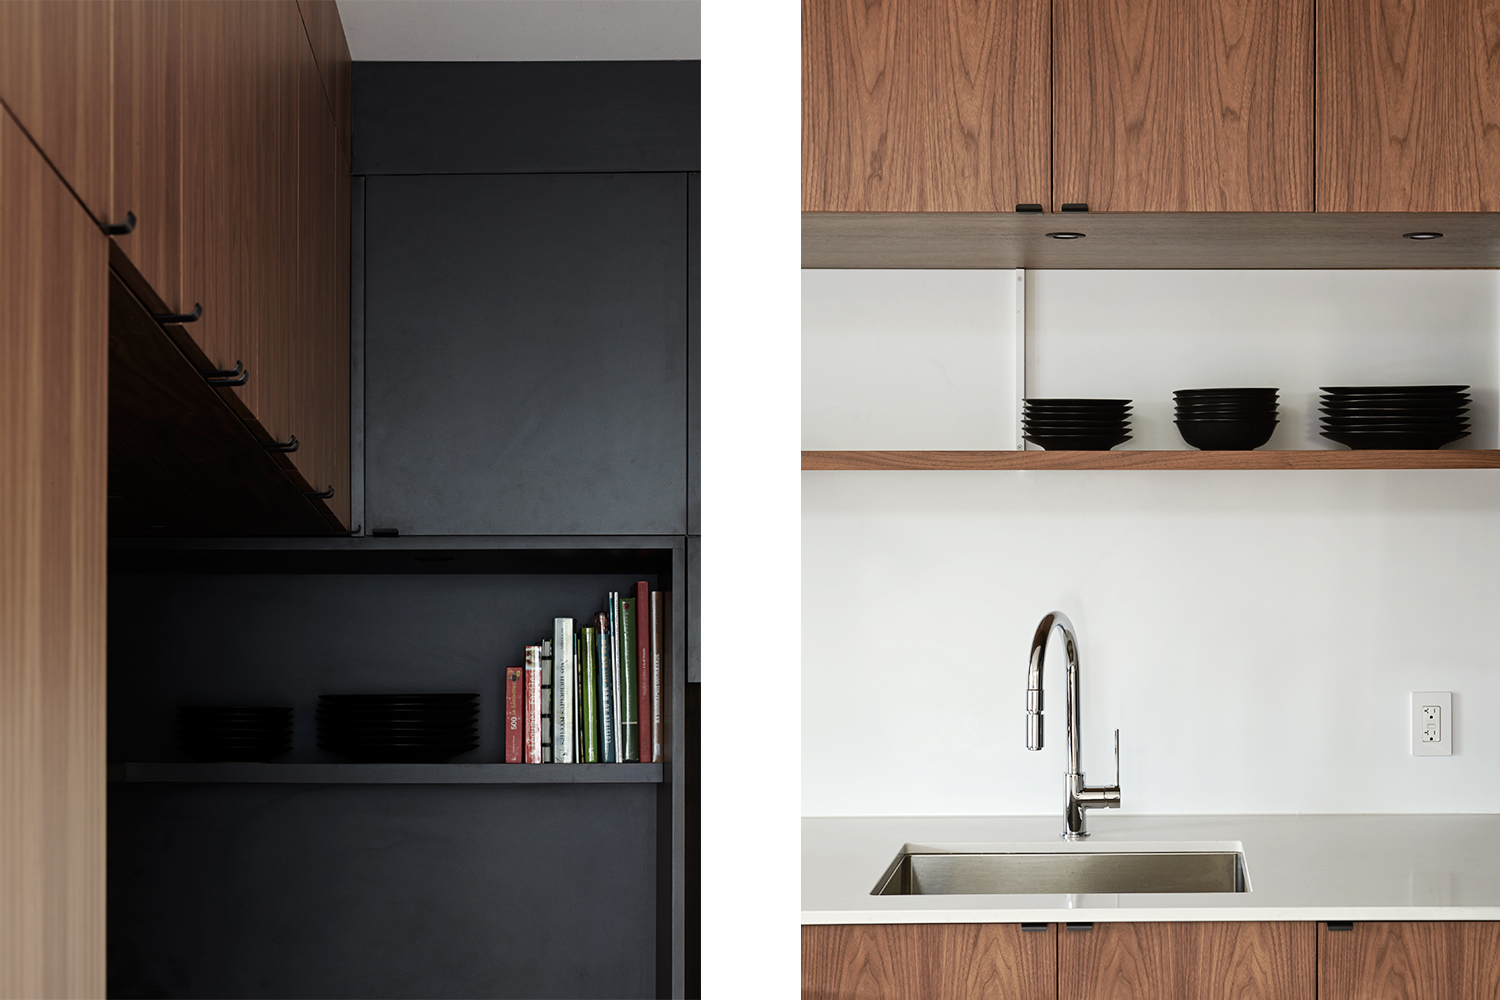 Detail of white quartz countertop with backsplash made of white painted steel. Shelf and wall cabinets in walnut. Other detail of the junction of a black shelf and wooden kitchen cabinets